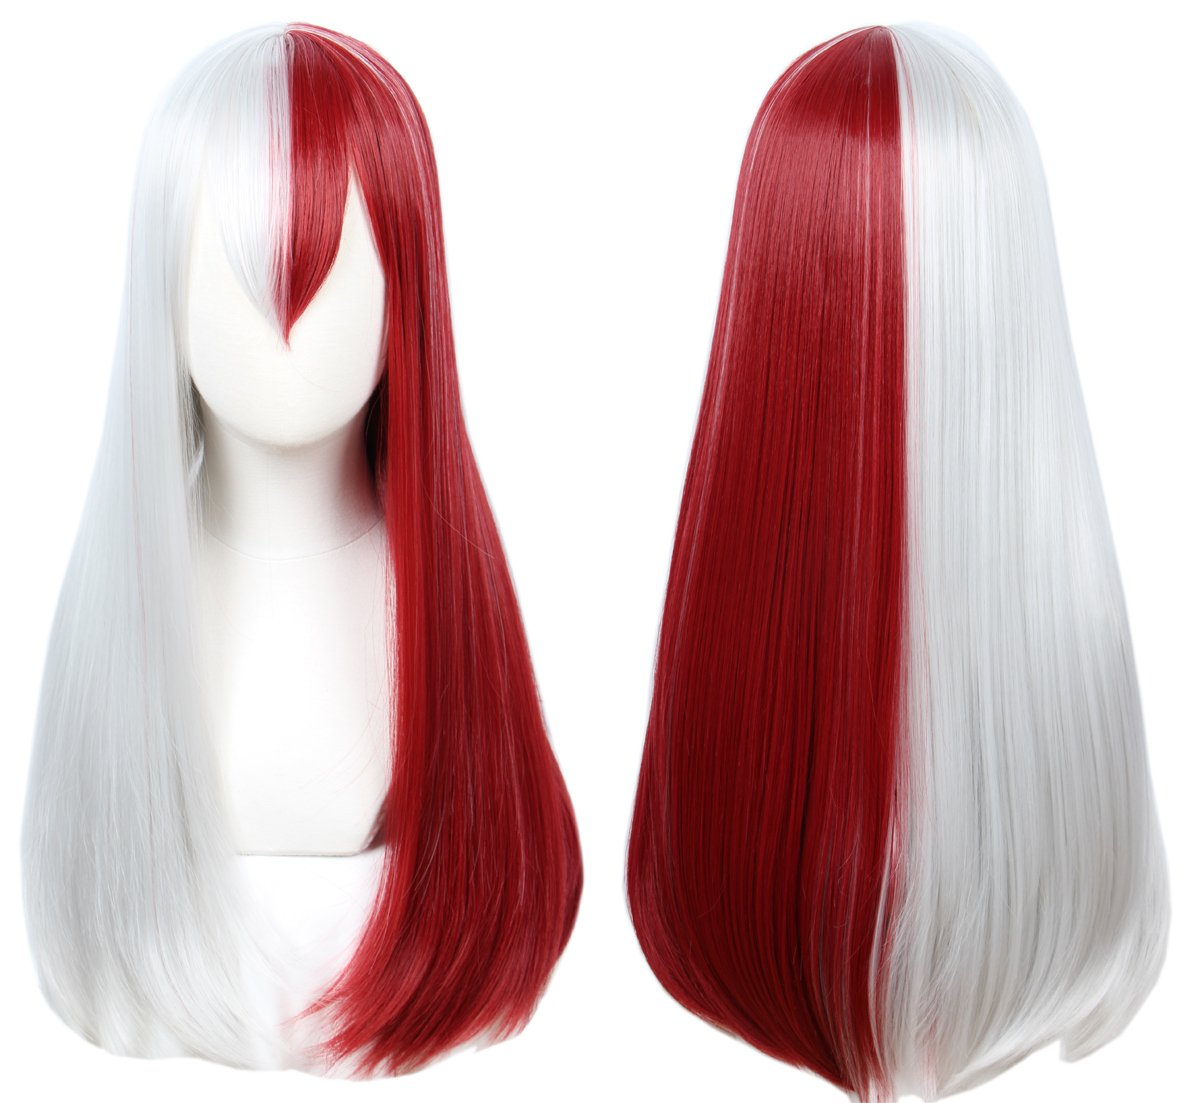 Linfairy Halloween Long Costume Cosplay Wig Half Red and Sliver Wig for Women